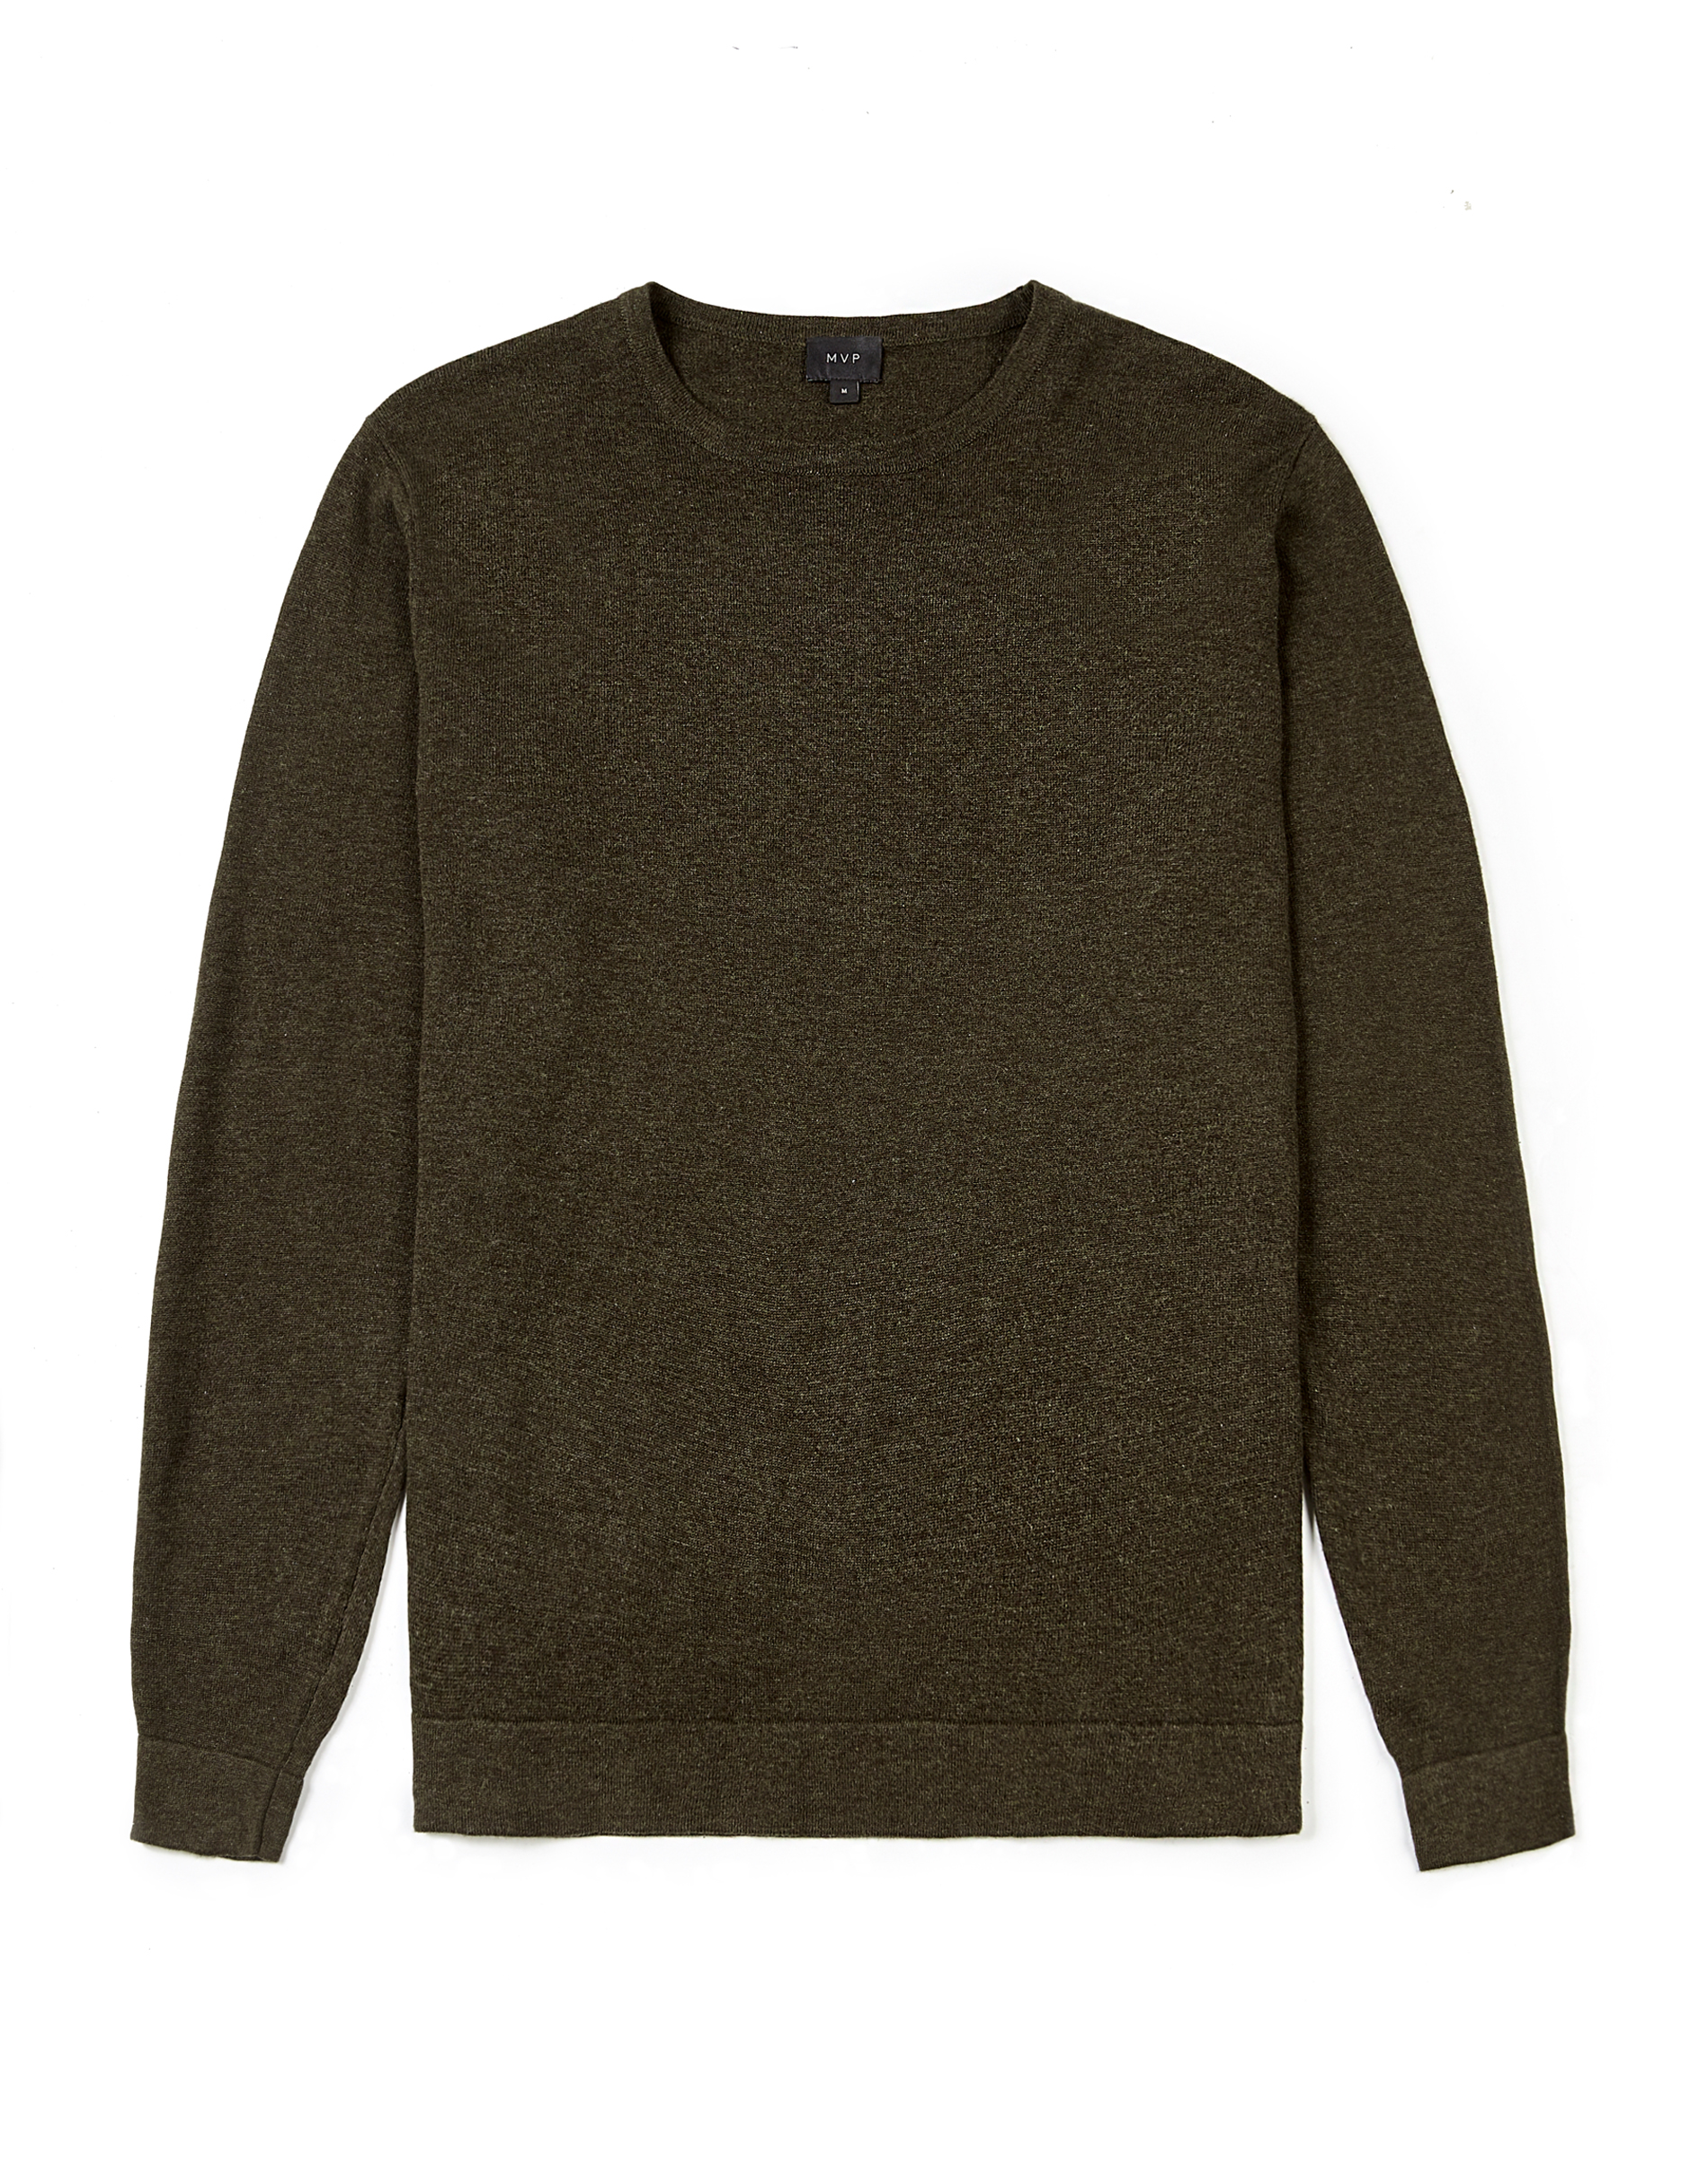 MVP MOSS GREEN Sutton Cotton Knitted Crew Neck